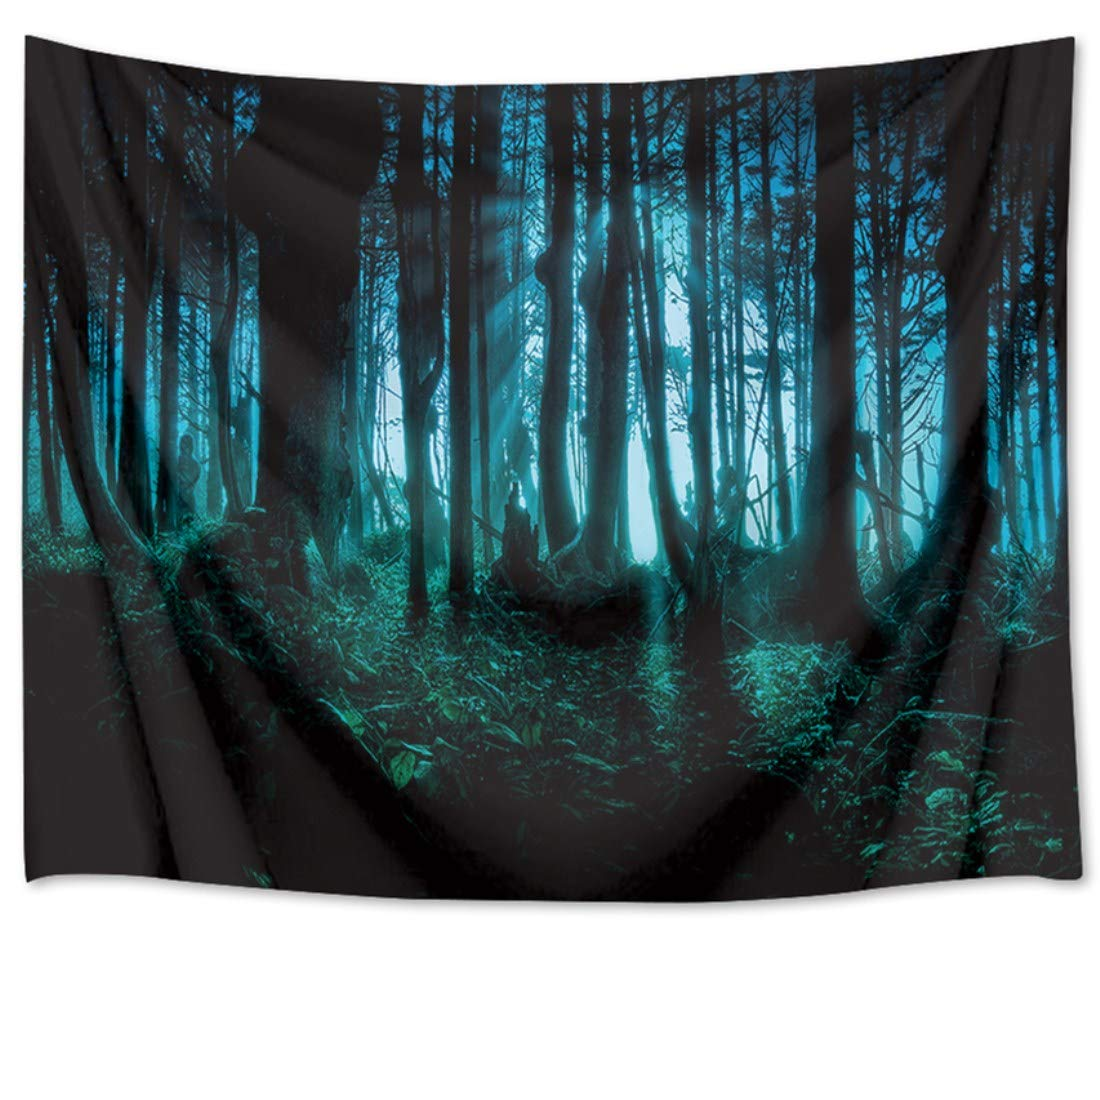 HVEST Halloween Tapestry Night Tapestry Wall Hangings Haunted Woods with Trees and Plants Wall Blanket for Bedroom,Living Room,Dorm Decor,80 W X 60 H INCH